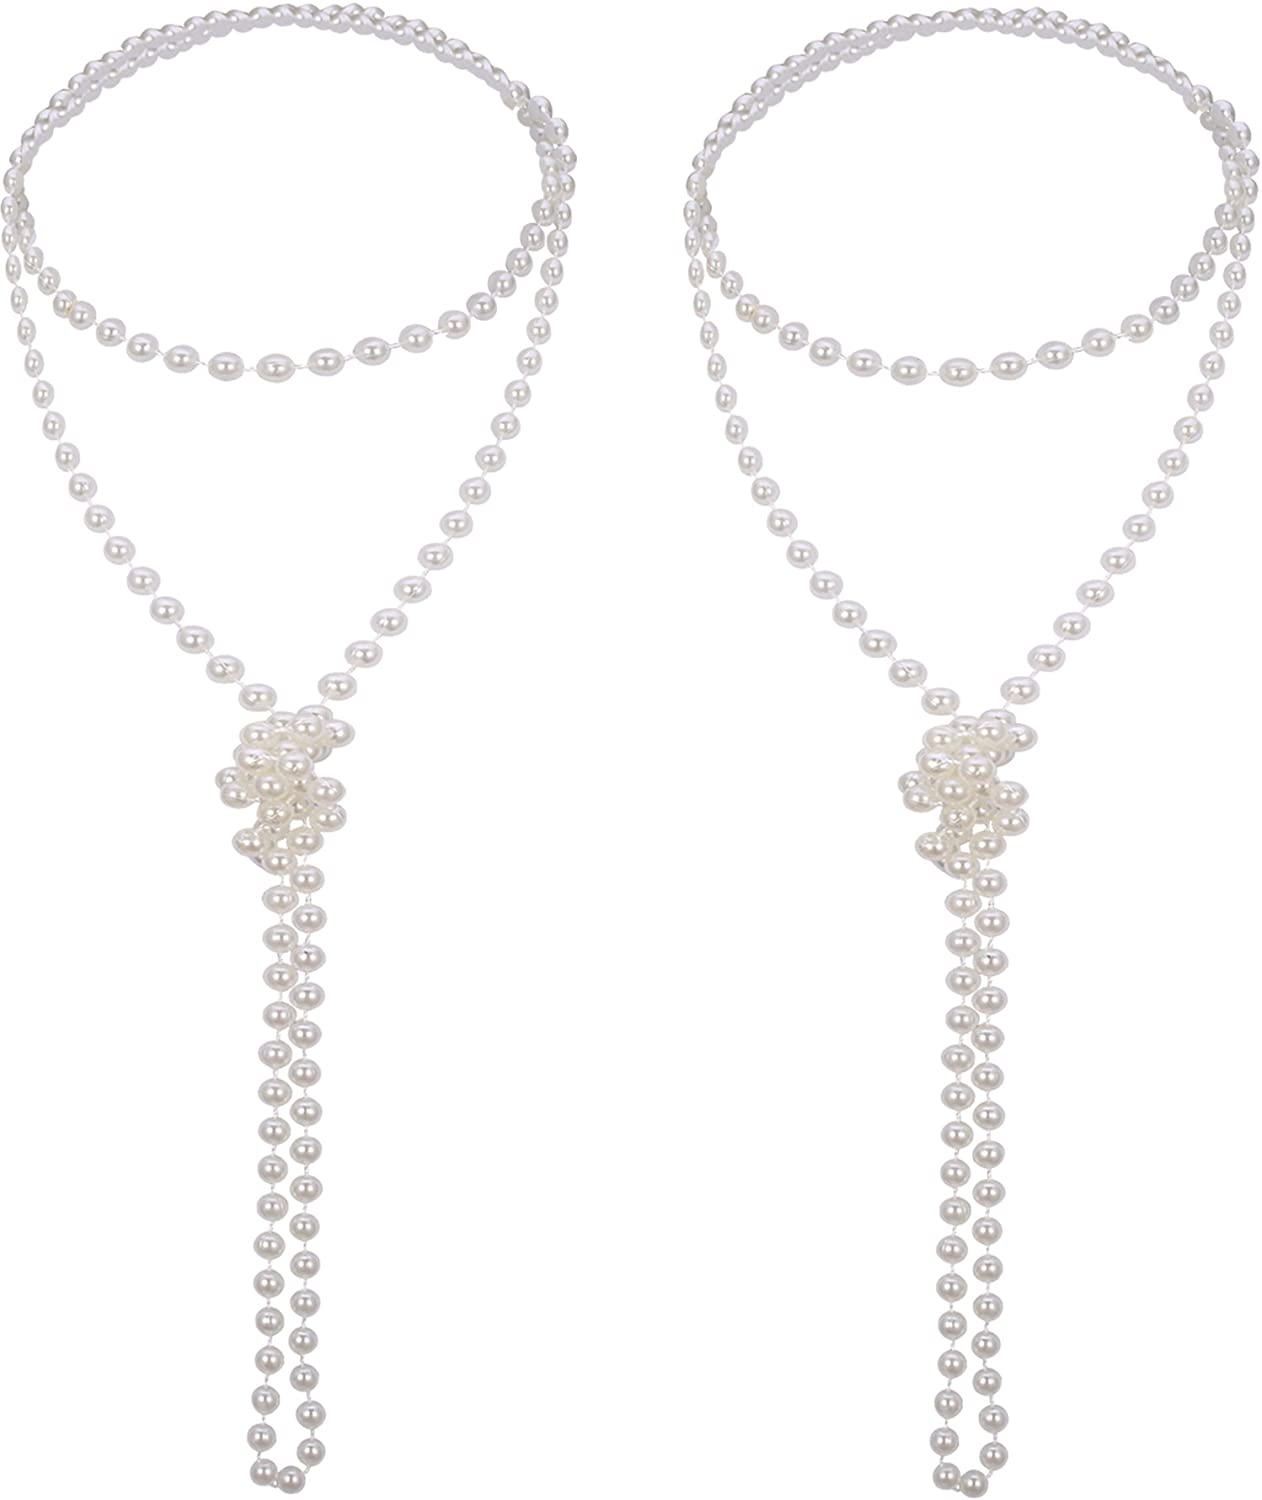 Mudder 2 Pack 1920s Artificial Long Pearl Necklace Flapper Beads Faux Pearl Vintage Jewelry for Women Girls, 71 Inch